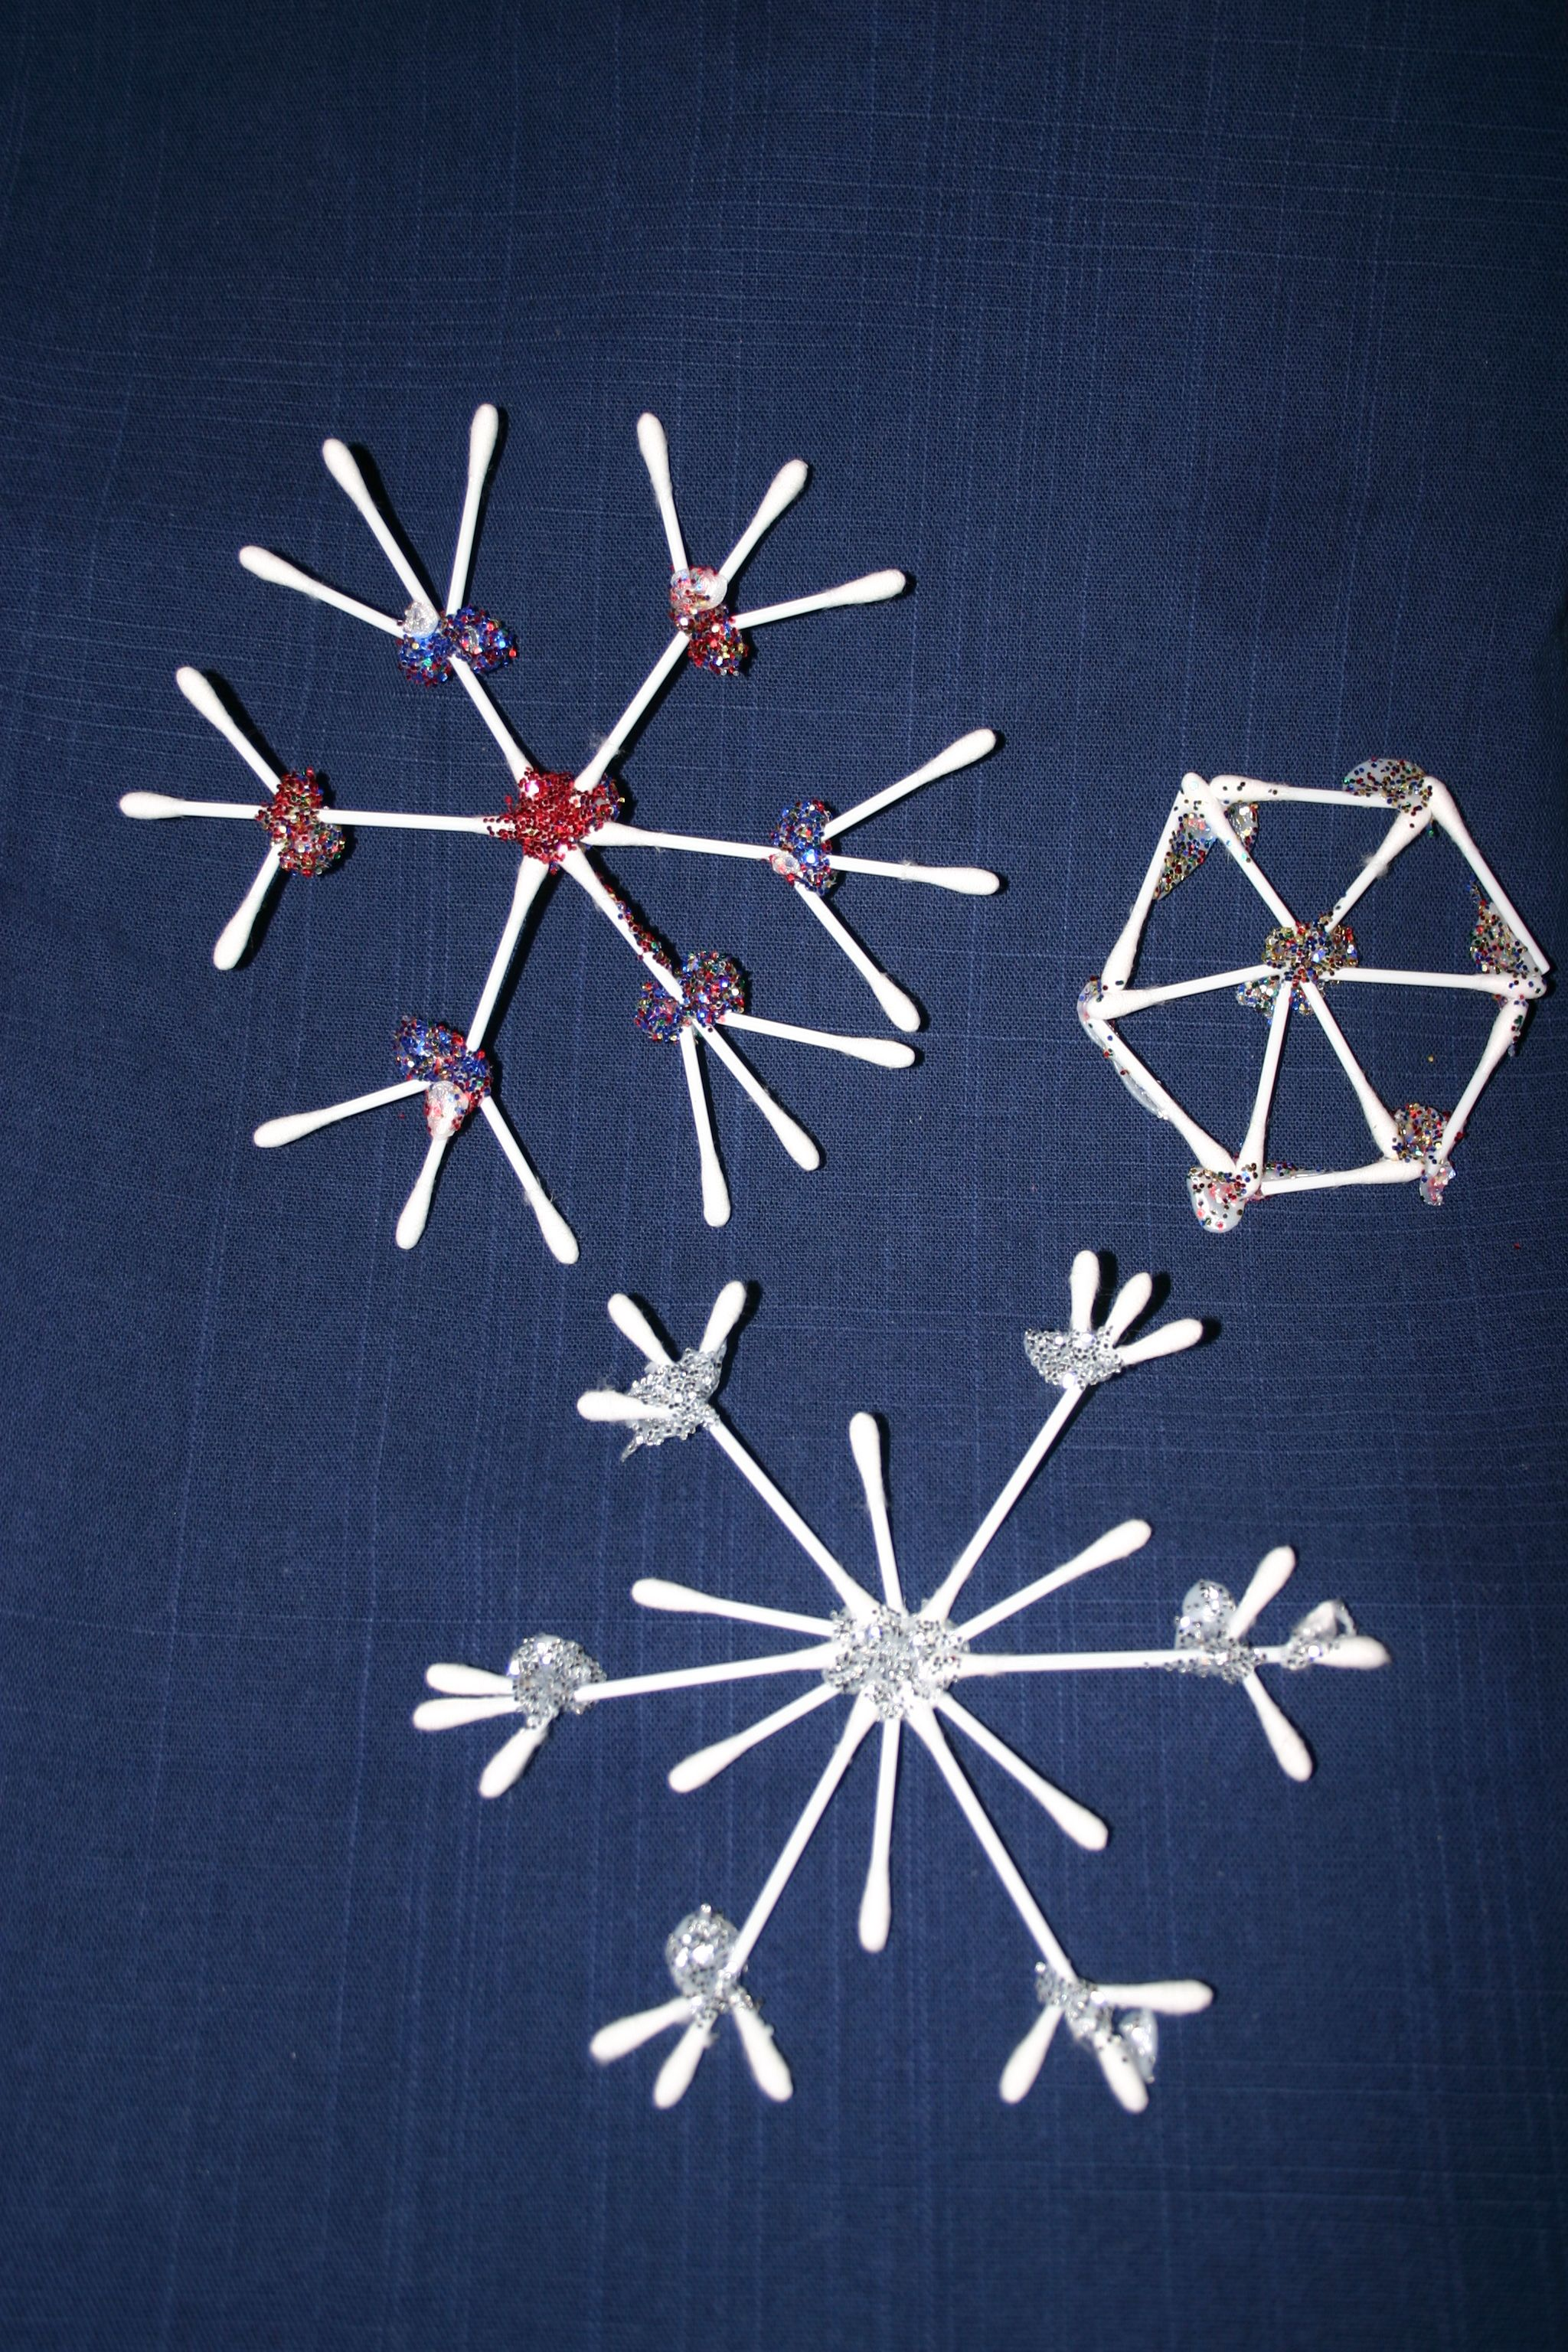 Snowflakes we hung up over Christmas Made from cotton buds